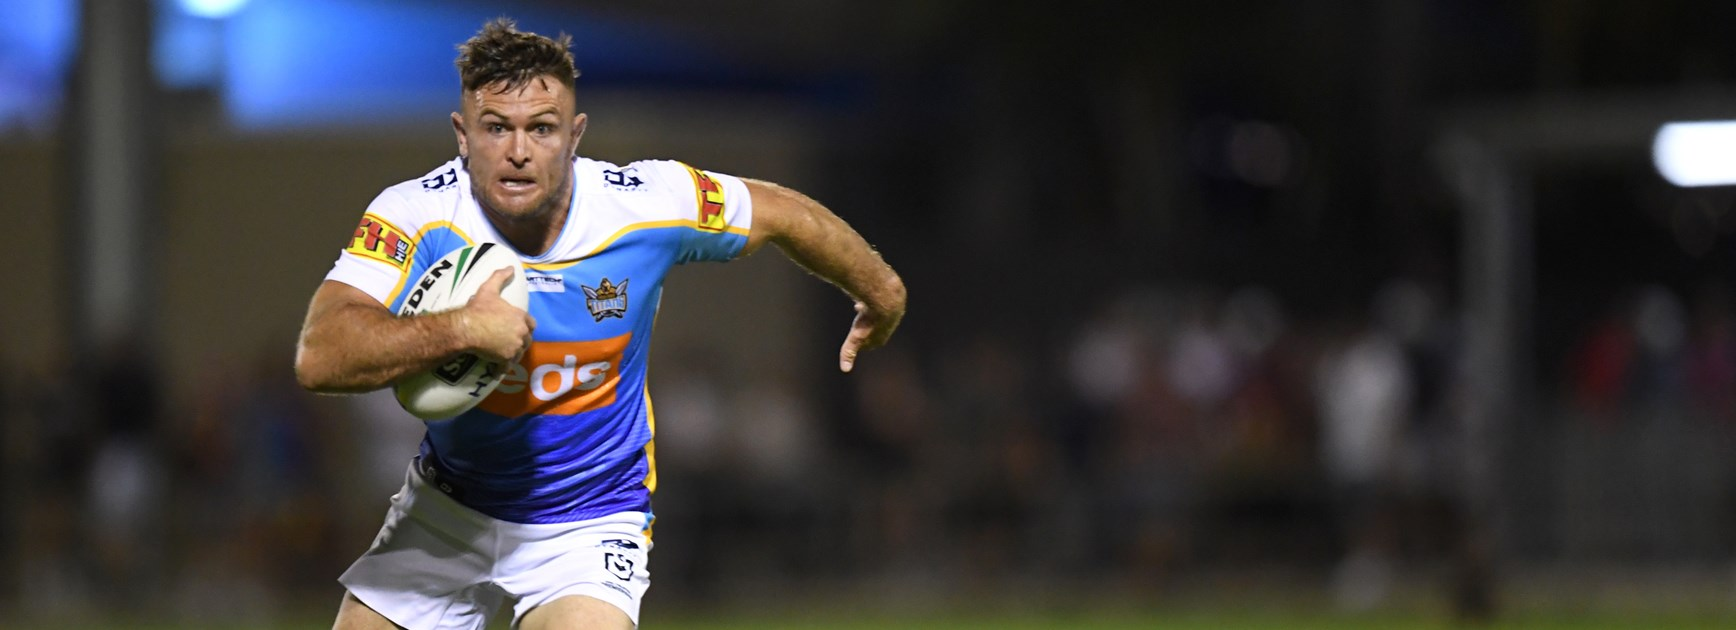 Terrific Titans Bury Broncos In Final Trial Match In Redcliffe